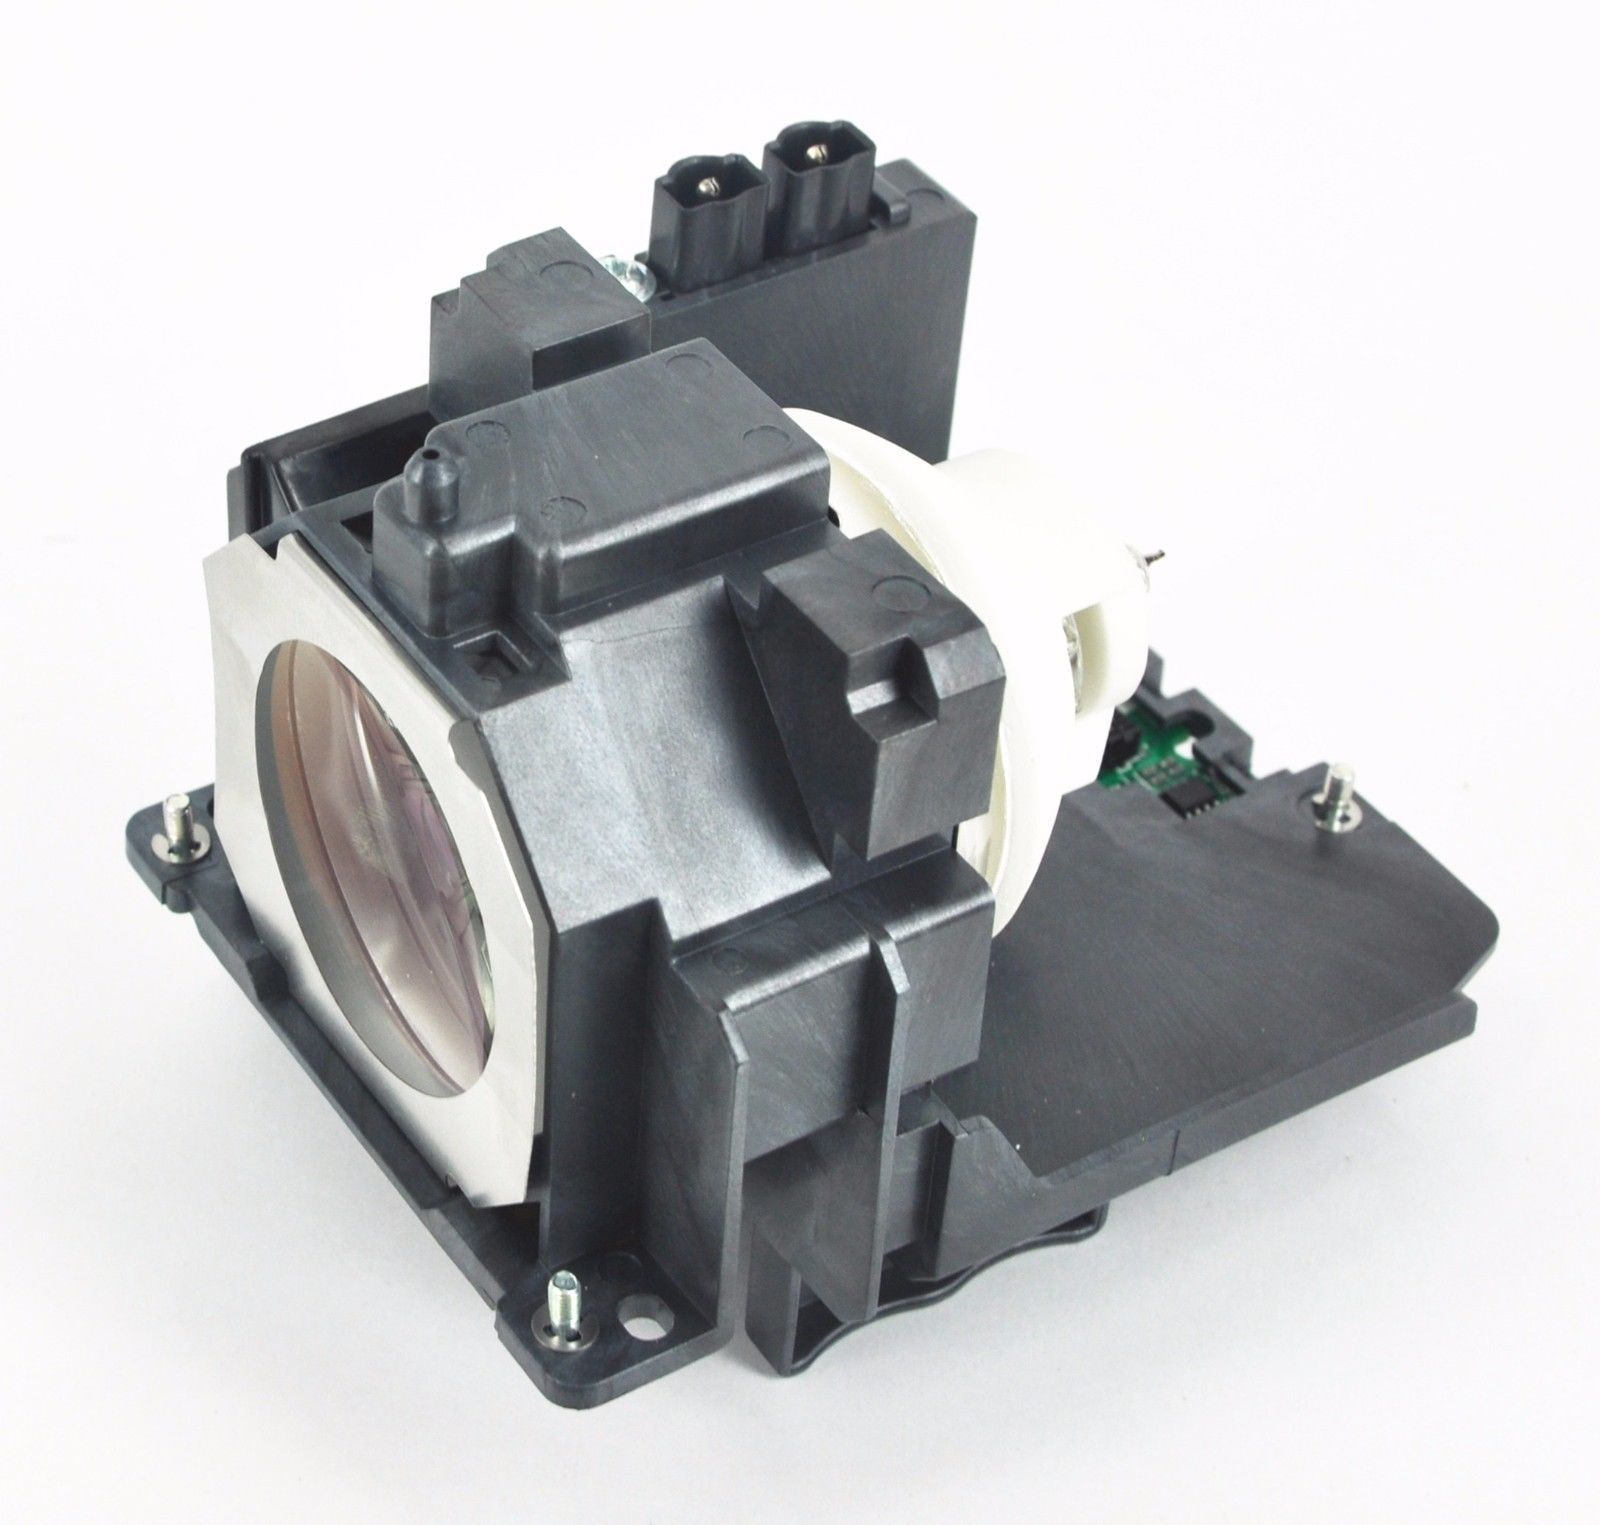 ET-LAE300 ETLAE300 for PANASONIC PT-EX510 PT-EW540 PT-EZ580 PT-EX610 PT-EW640 PT-EW730 PT-EZ770 Projector Lamp Bulb with Housing велотренажер dfc pt 02mb